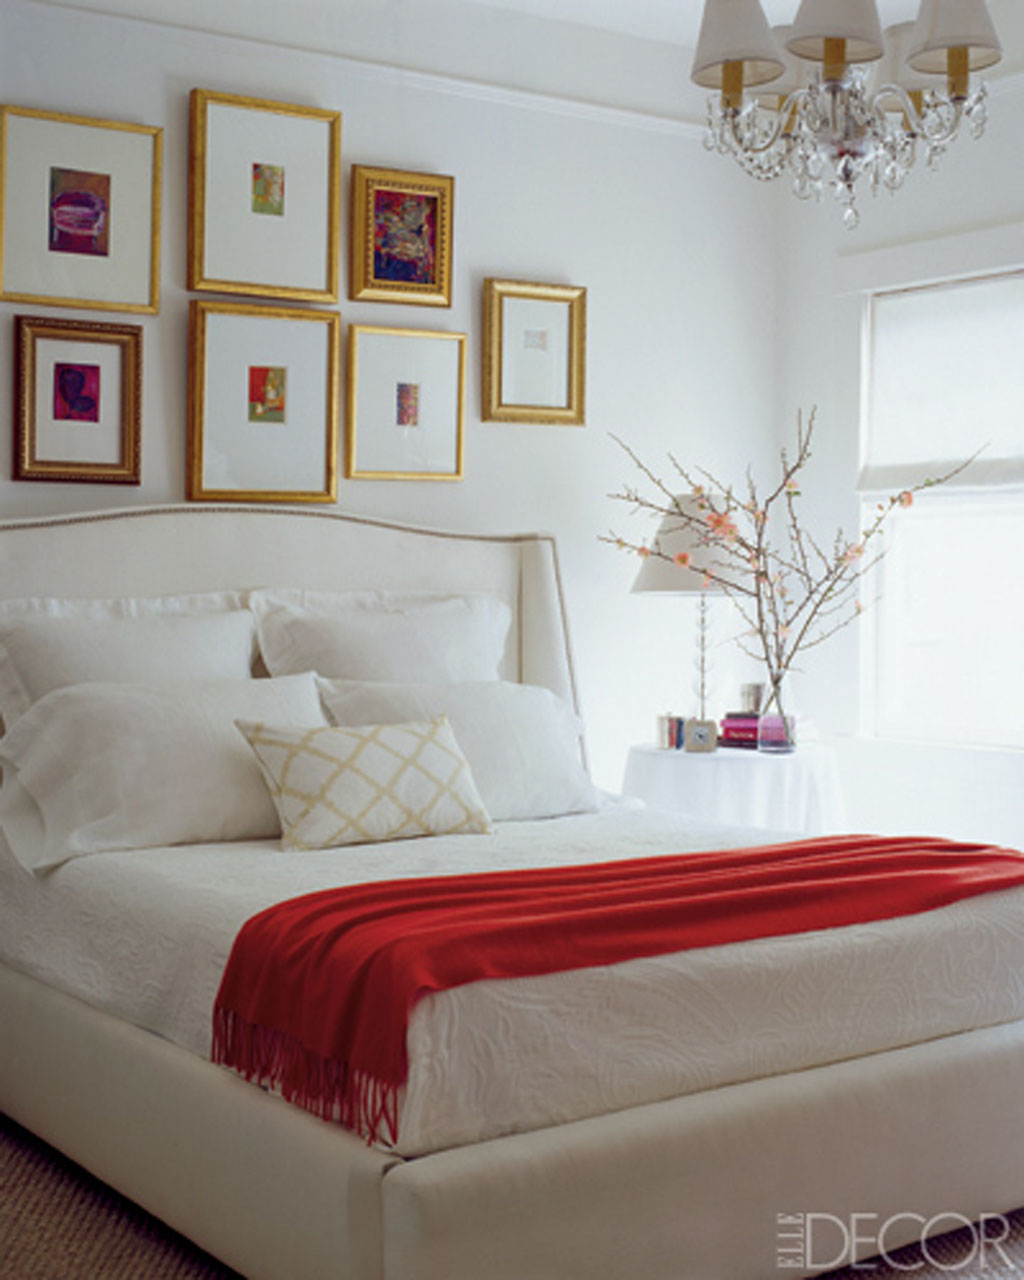 Black white and red bedroom ideas 5 small interior ideas for Bedroom ideas red and gold